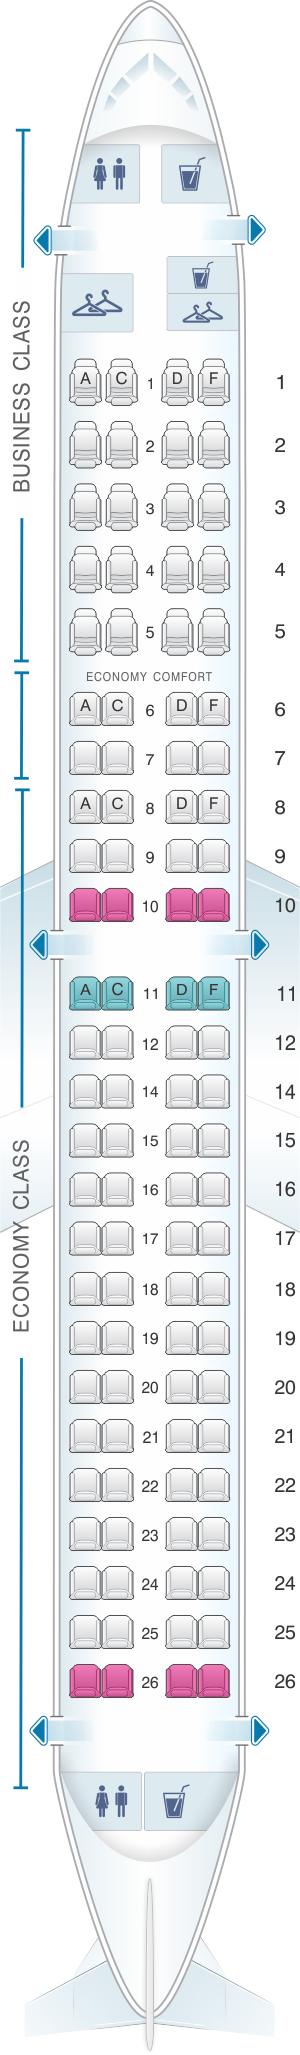 Seat map for KLM Embraer 190